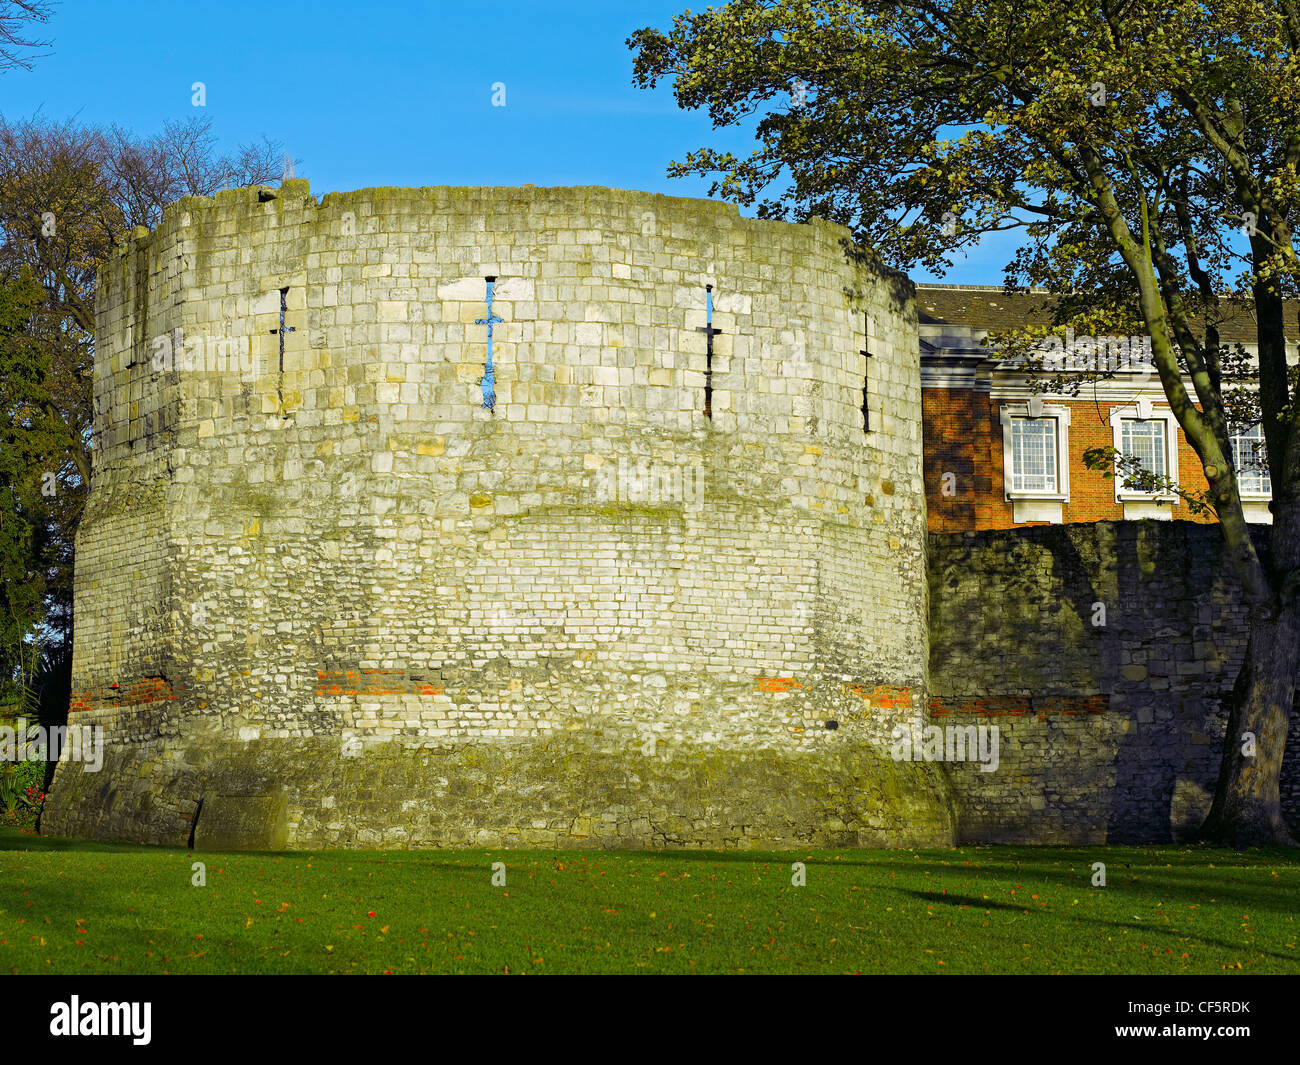 The Multangular Tower (York's only remaining Roman tower) in Museum Gardens. The tower was probably built in - Stock Image